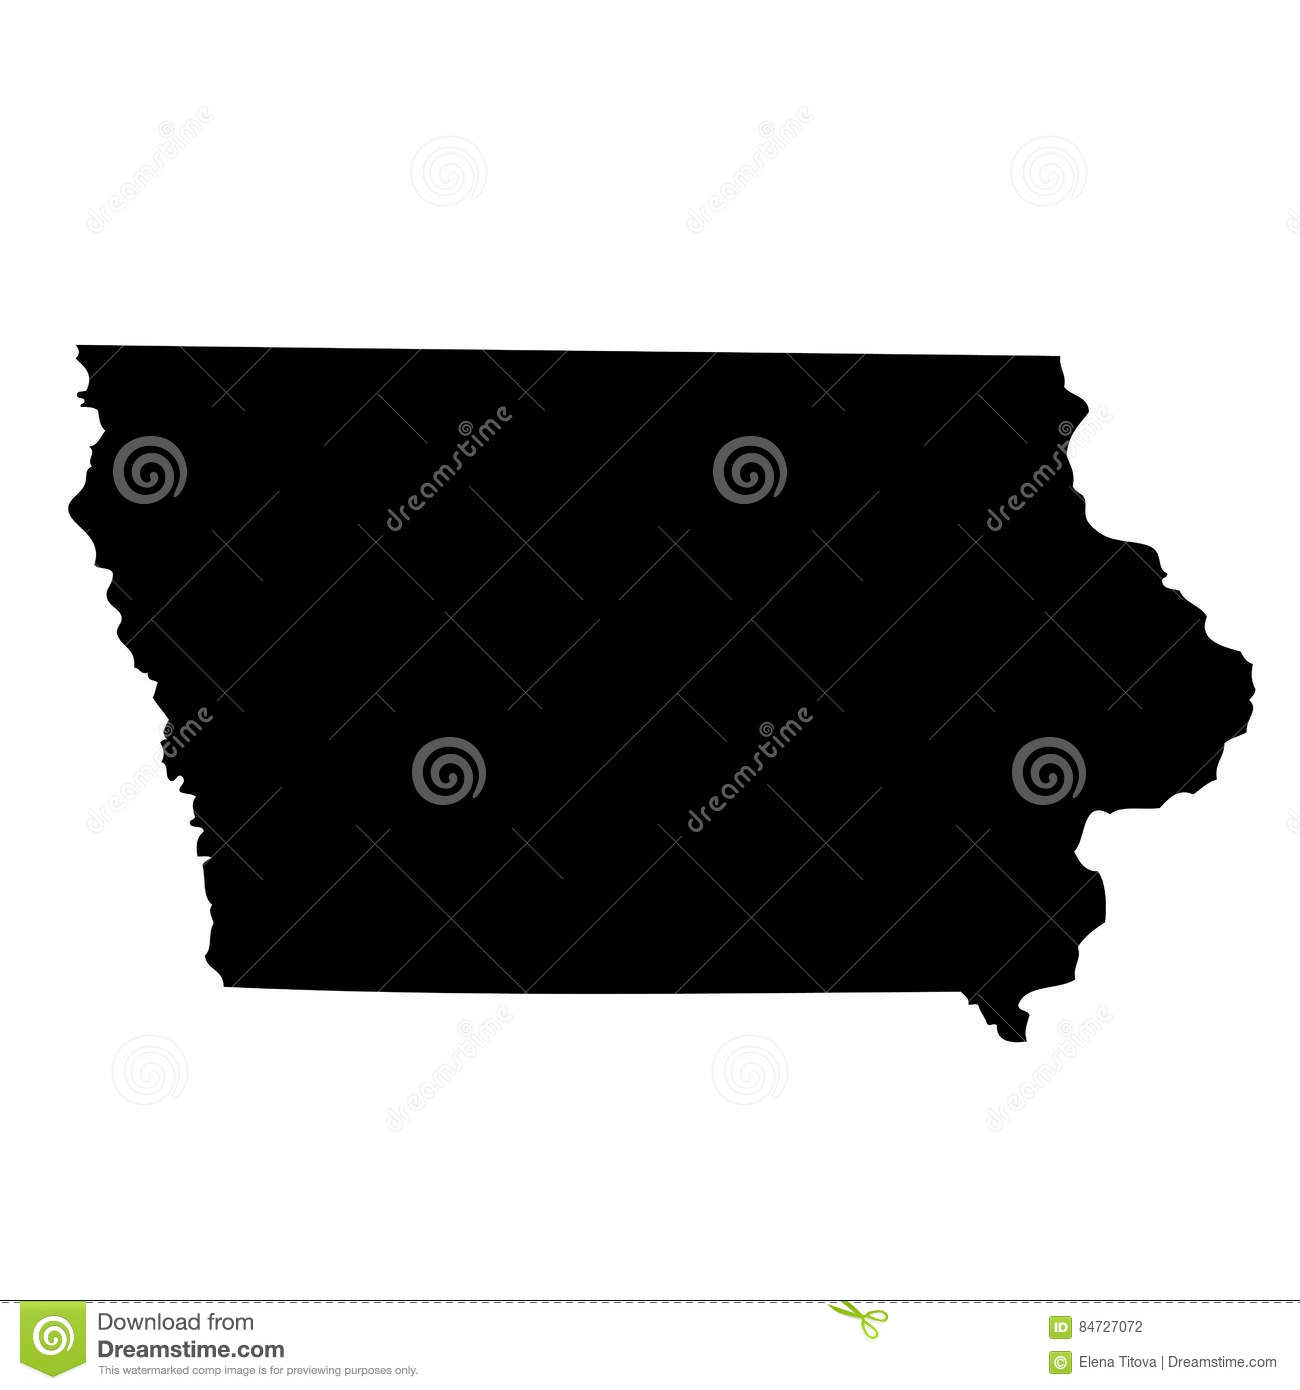 U Of Iowa Map.Map Of The U S State Iowa Stock Vector Illustration Of Frame